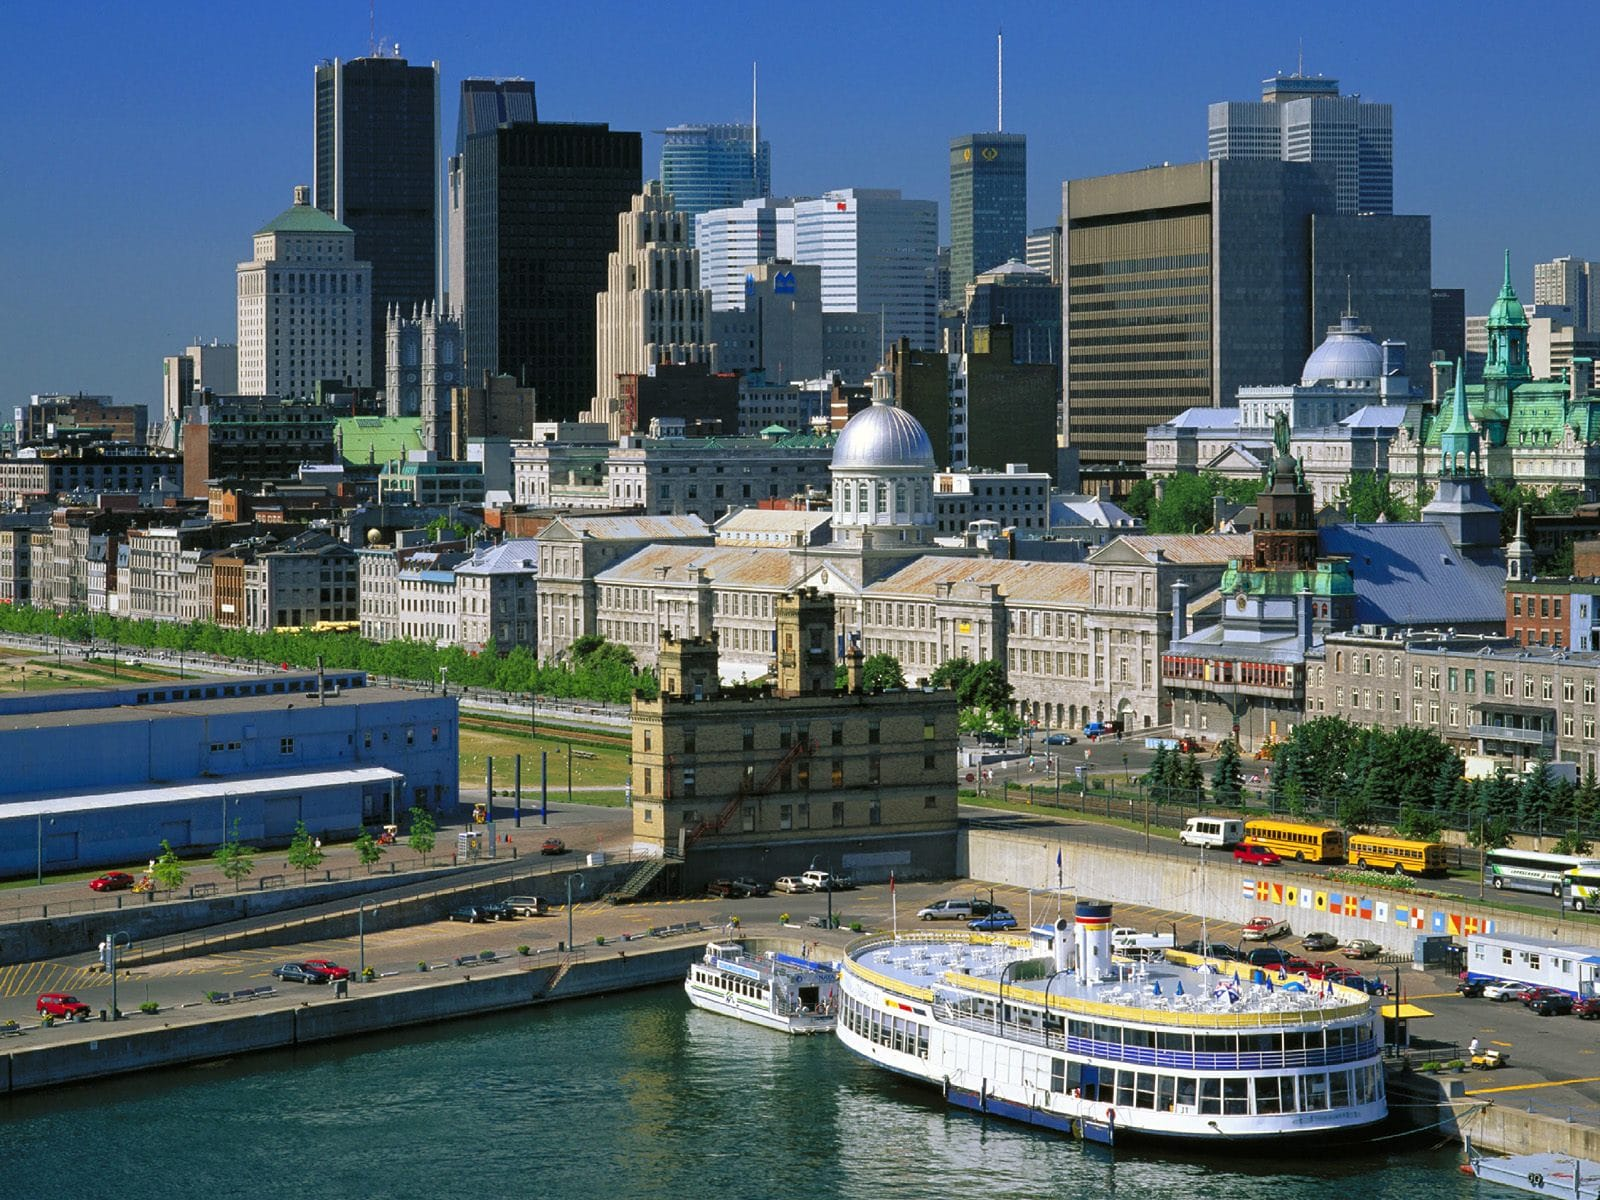 The tourists guide to montreal during the grand prix weekend the tourists guide to montreal during the grand prix weekend solutioingenieria Choice Image